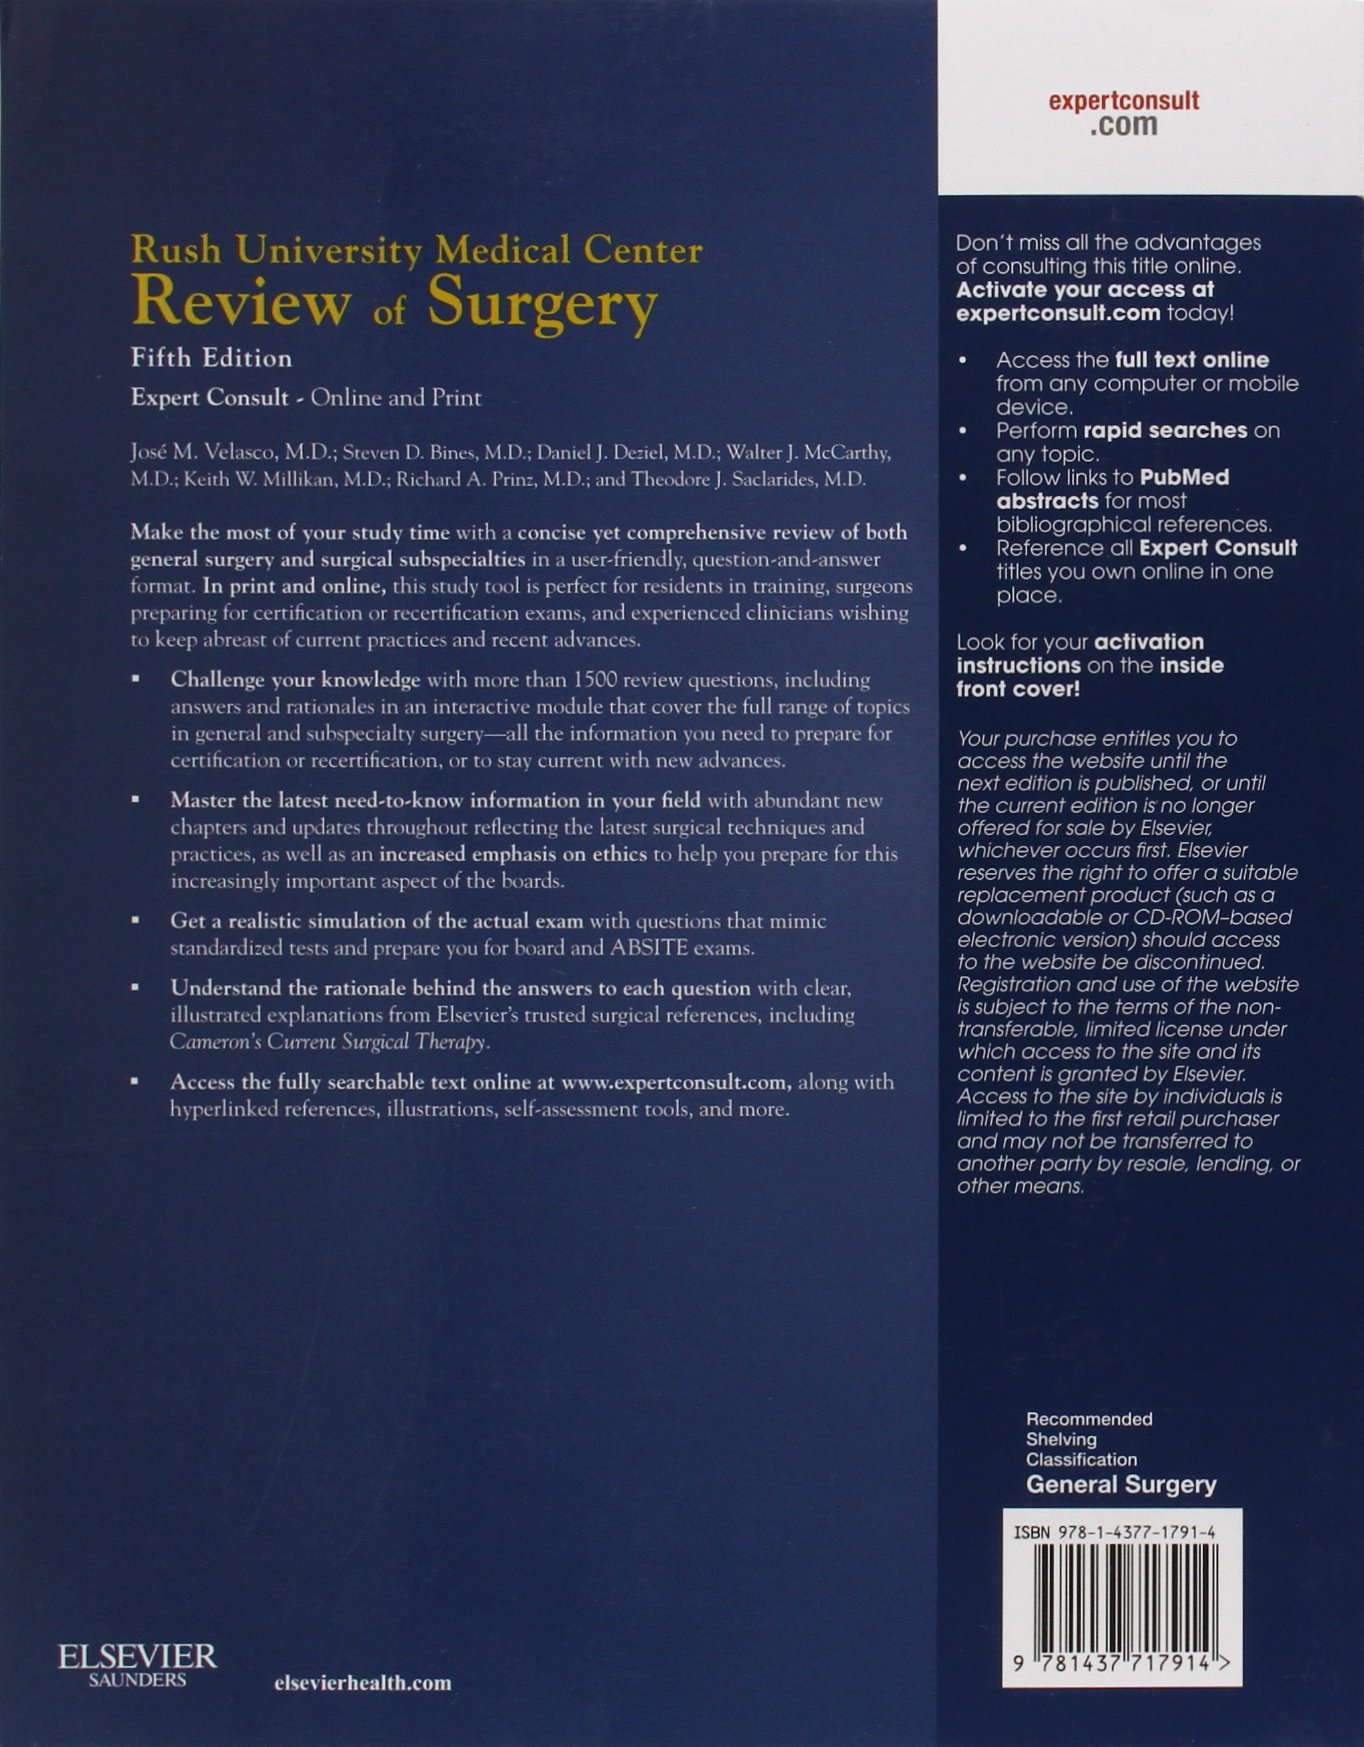 Rush university medical center review of surgery e-book kindle.